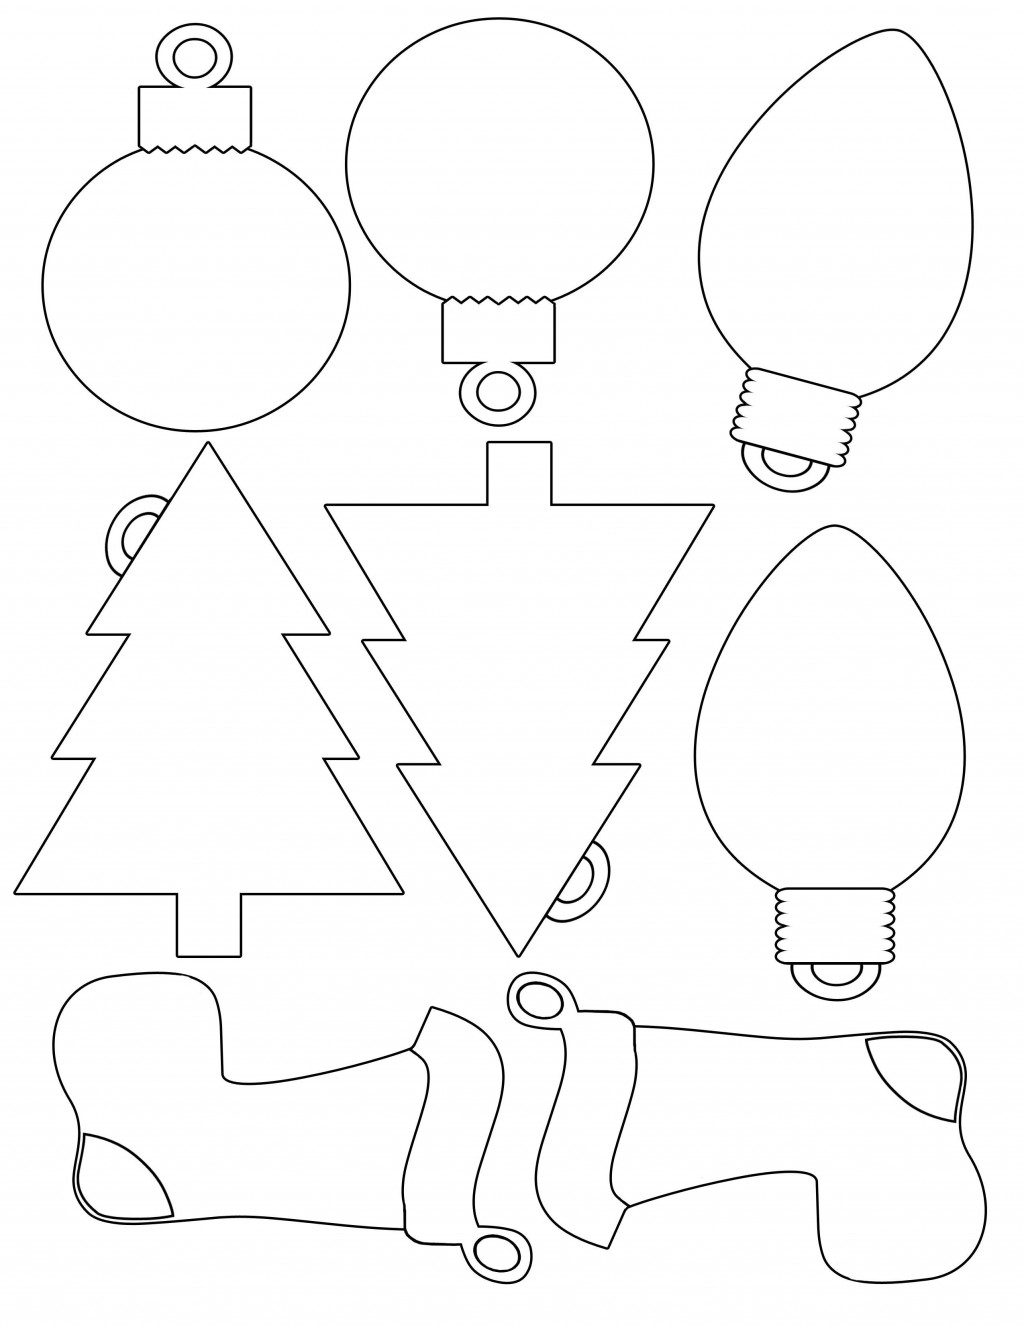 005 Shocking Printable Christma Ornament Template Picture  Templates Stencil Felt Pattern TreeLarge